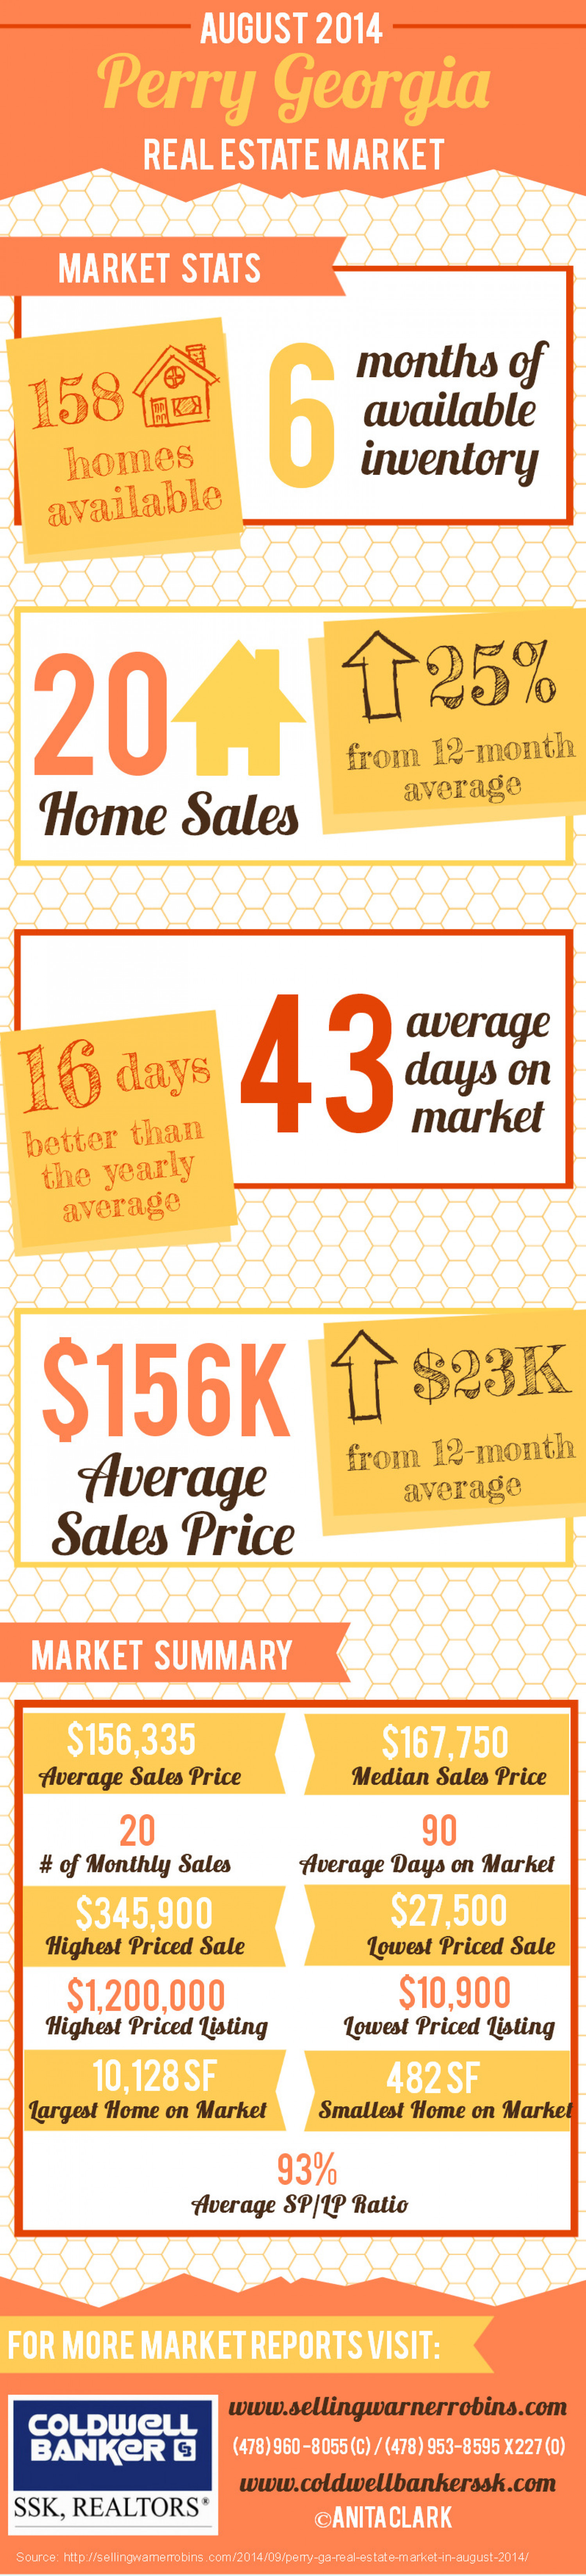 Perry GA Real Estate Market in August 2014 Infographic